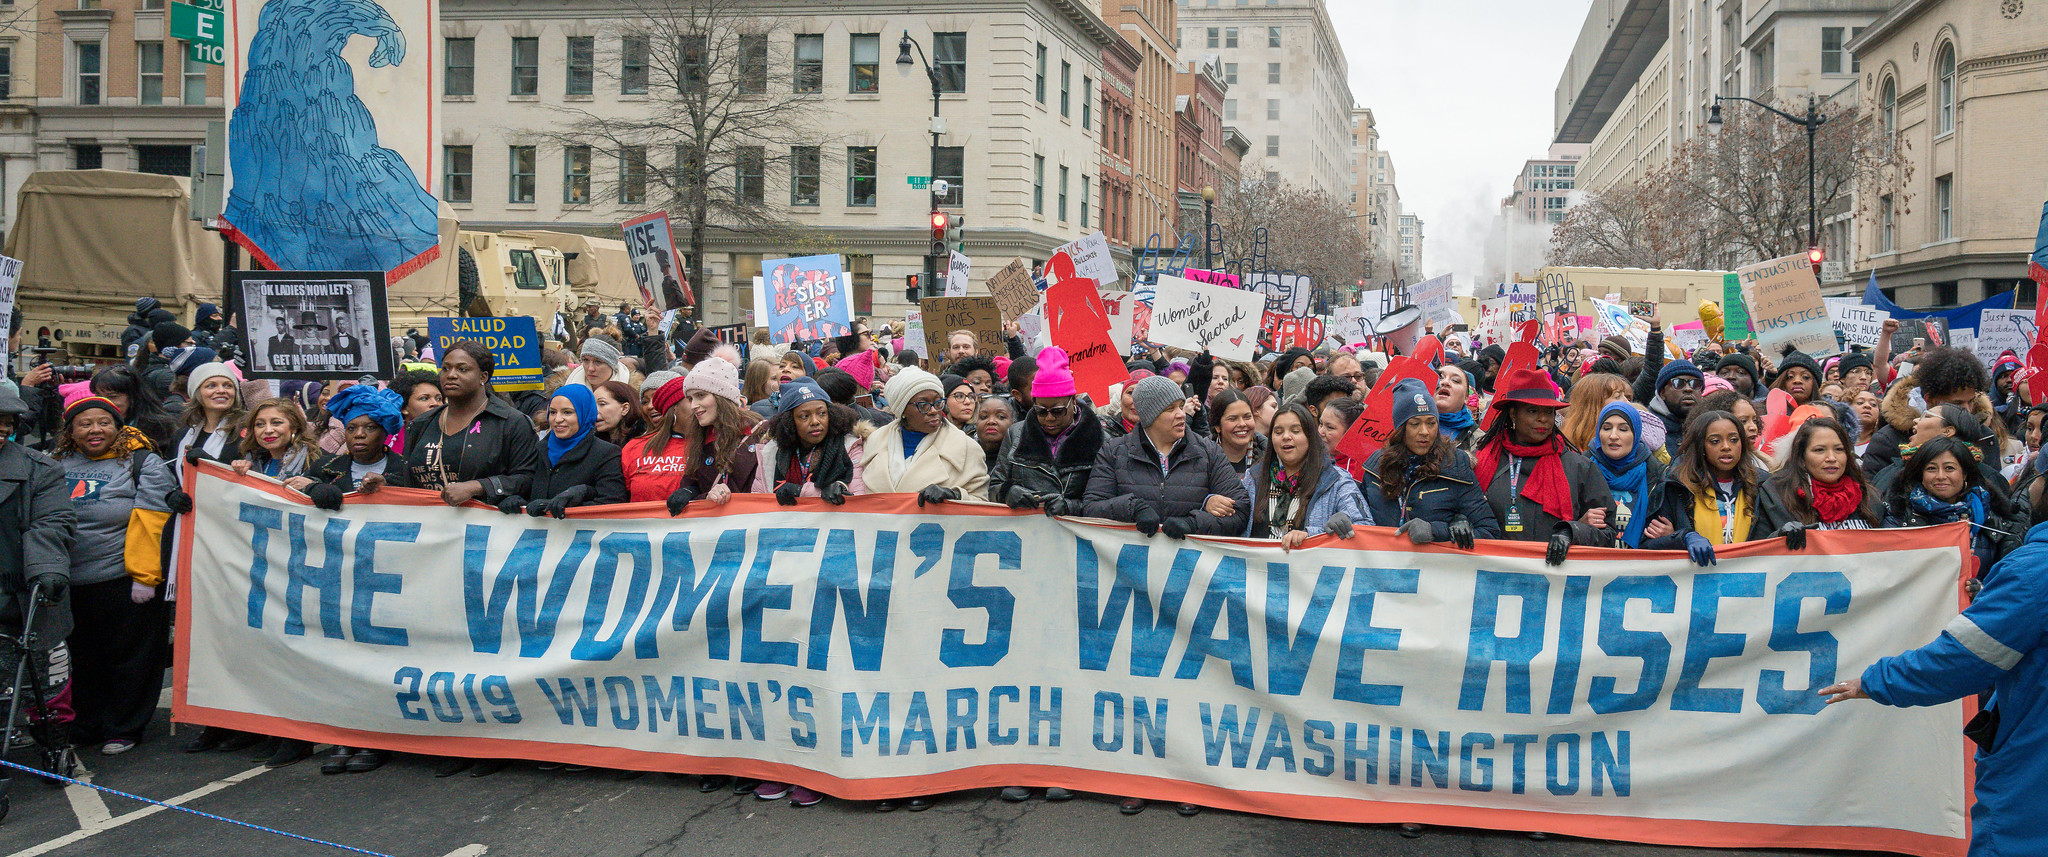 D.C. Women's March 2019. Image credit: Mobilus In Mobili on Flickr